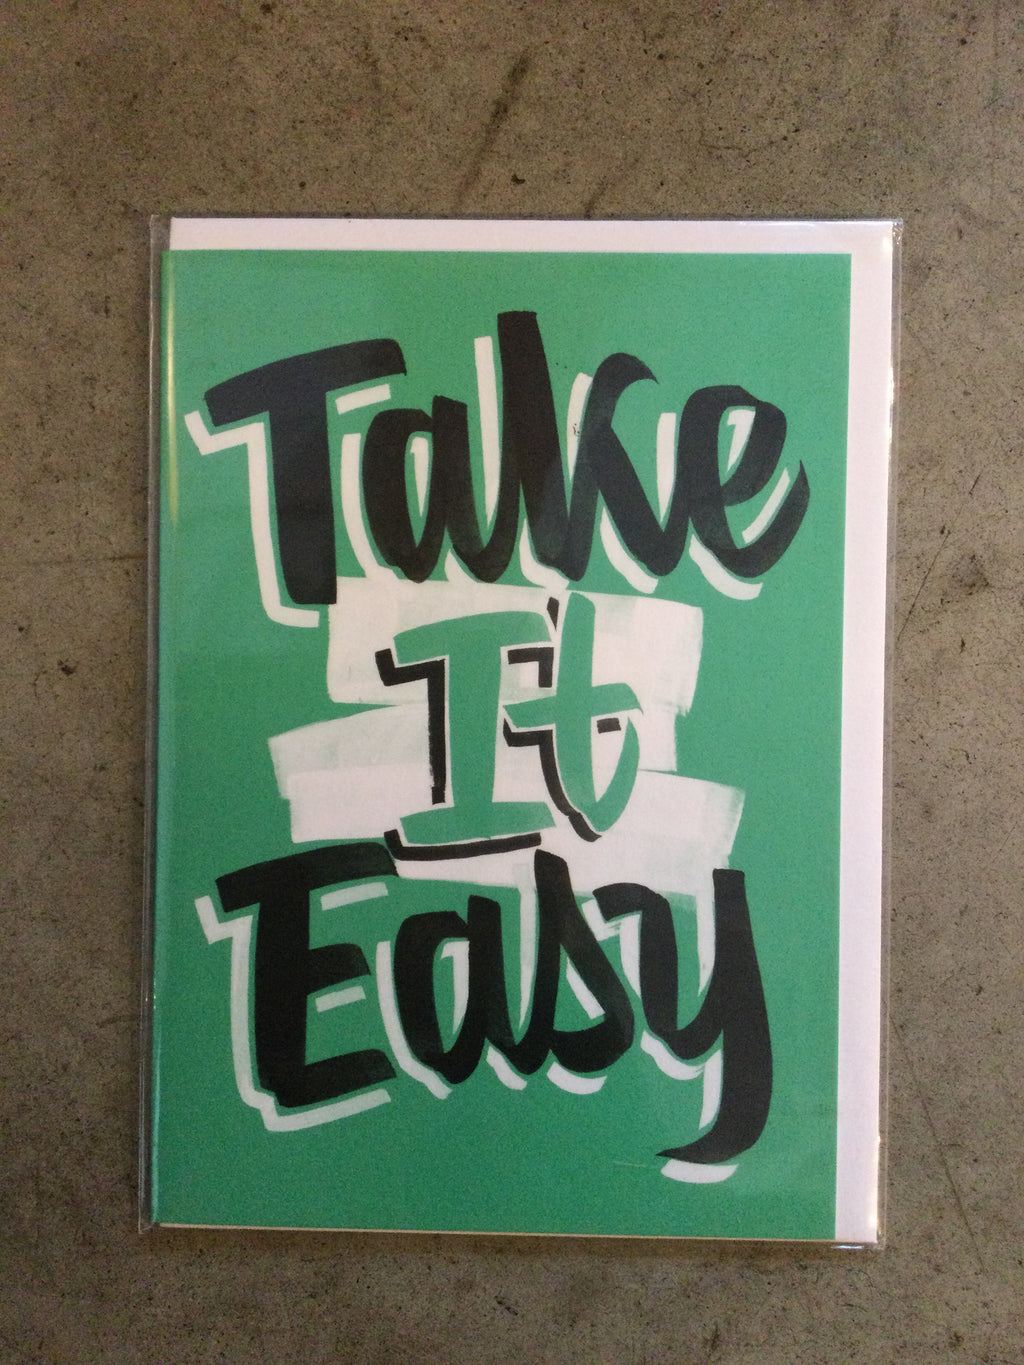 Wrap - Take it Easy